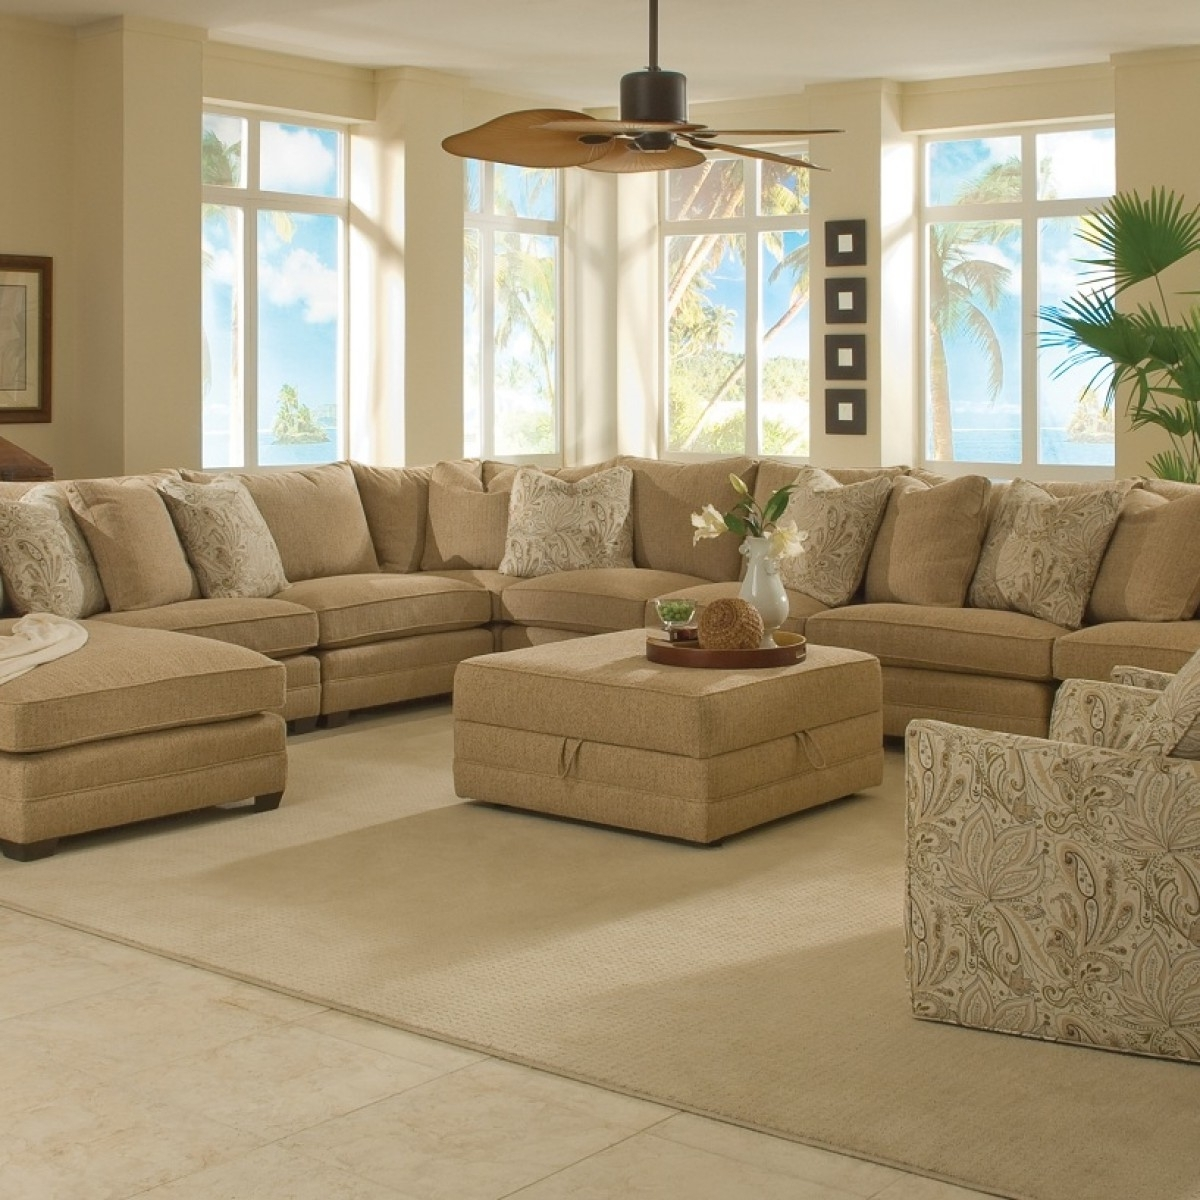 Preferred Factors To Consider Before Buying An Extra Large Sectional Sofa In Austin Sectional Sofas (View 4 of 15)